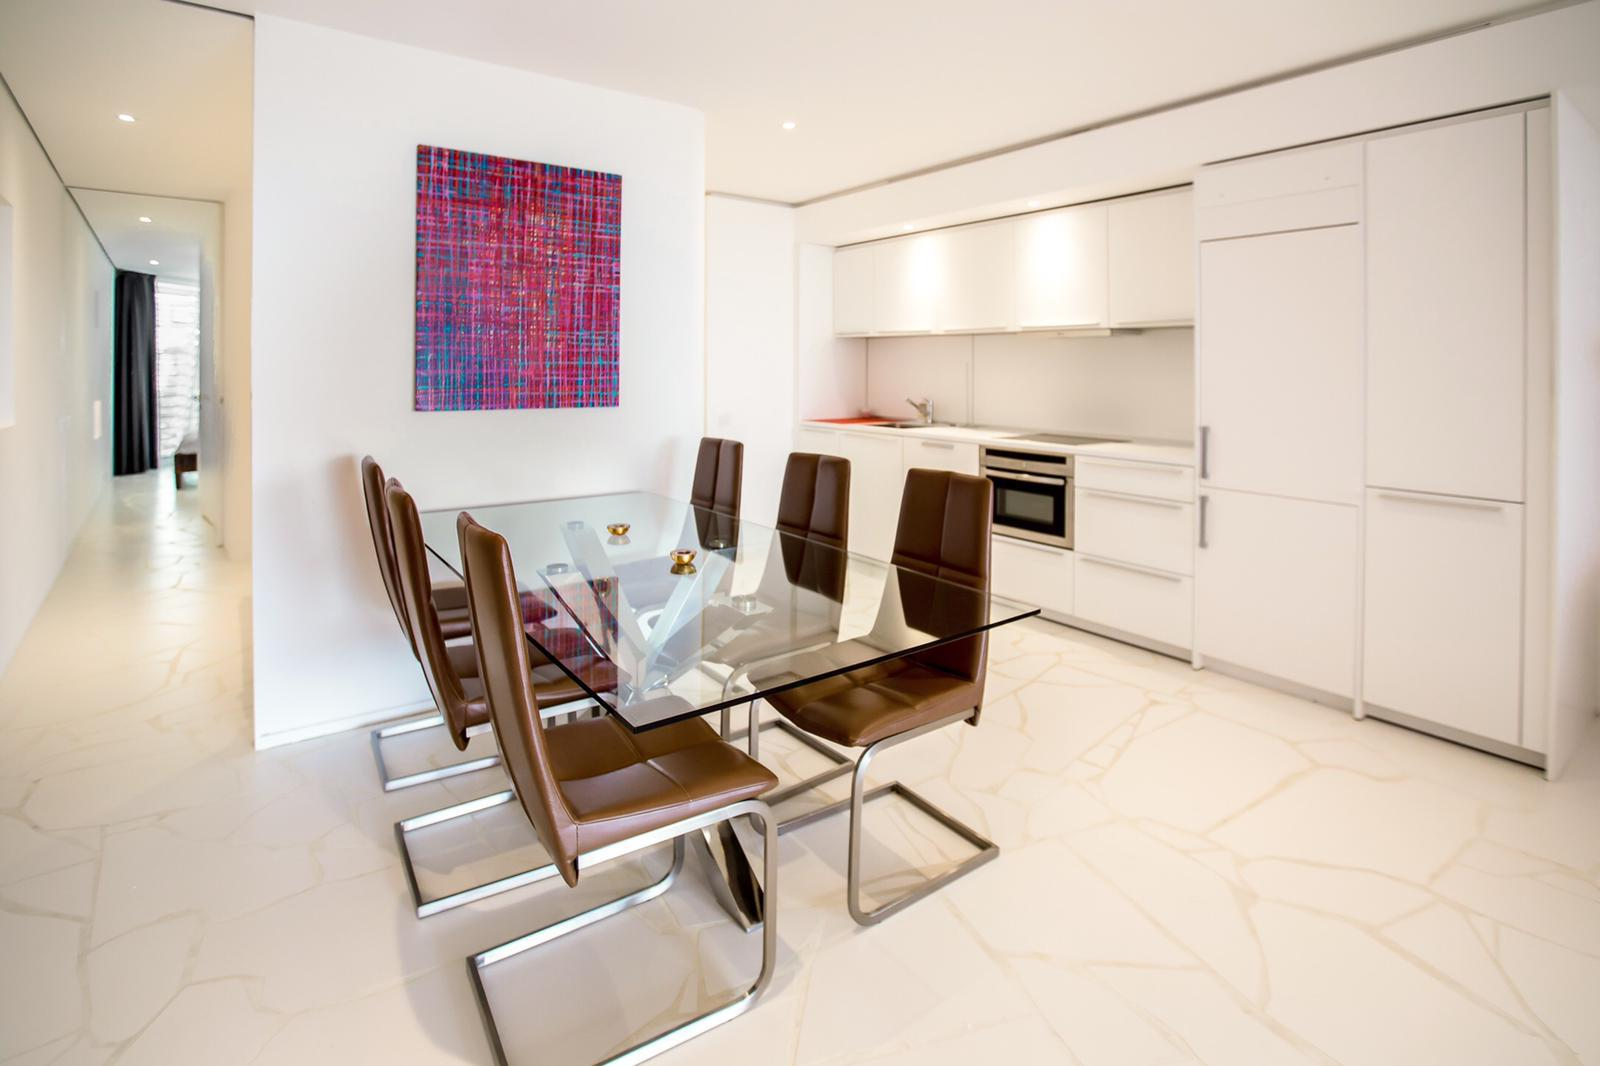 Modern 2 bed apartment with nice views located in Las Boas building